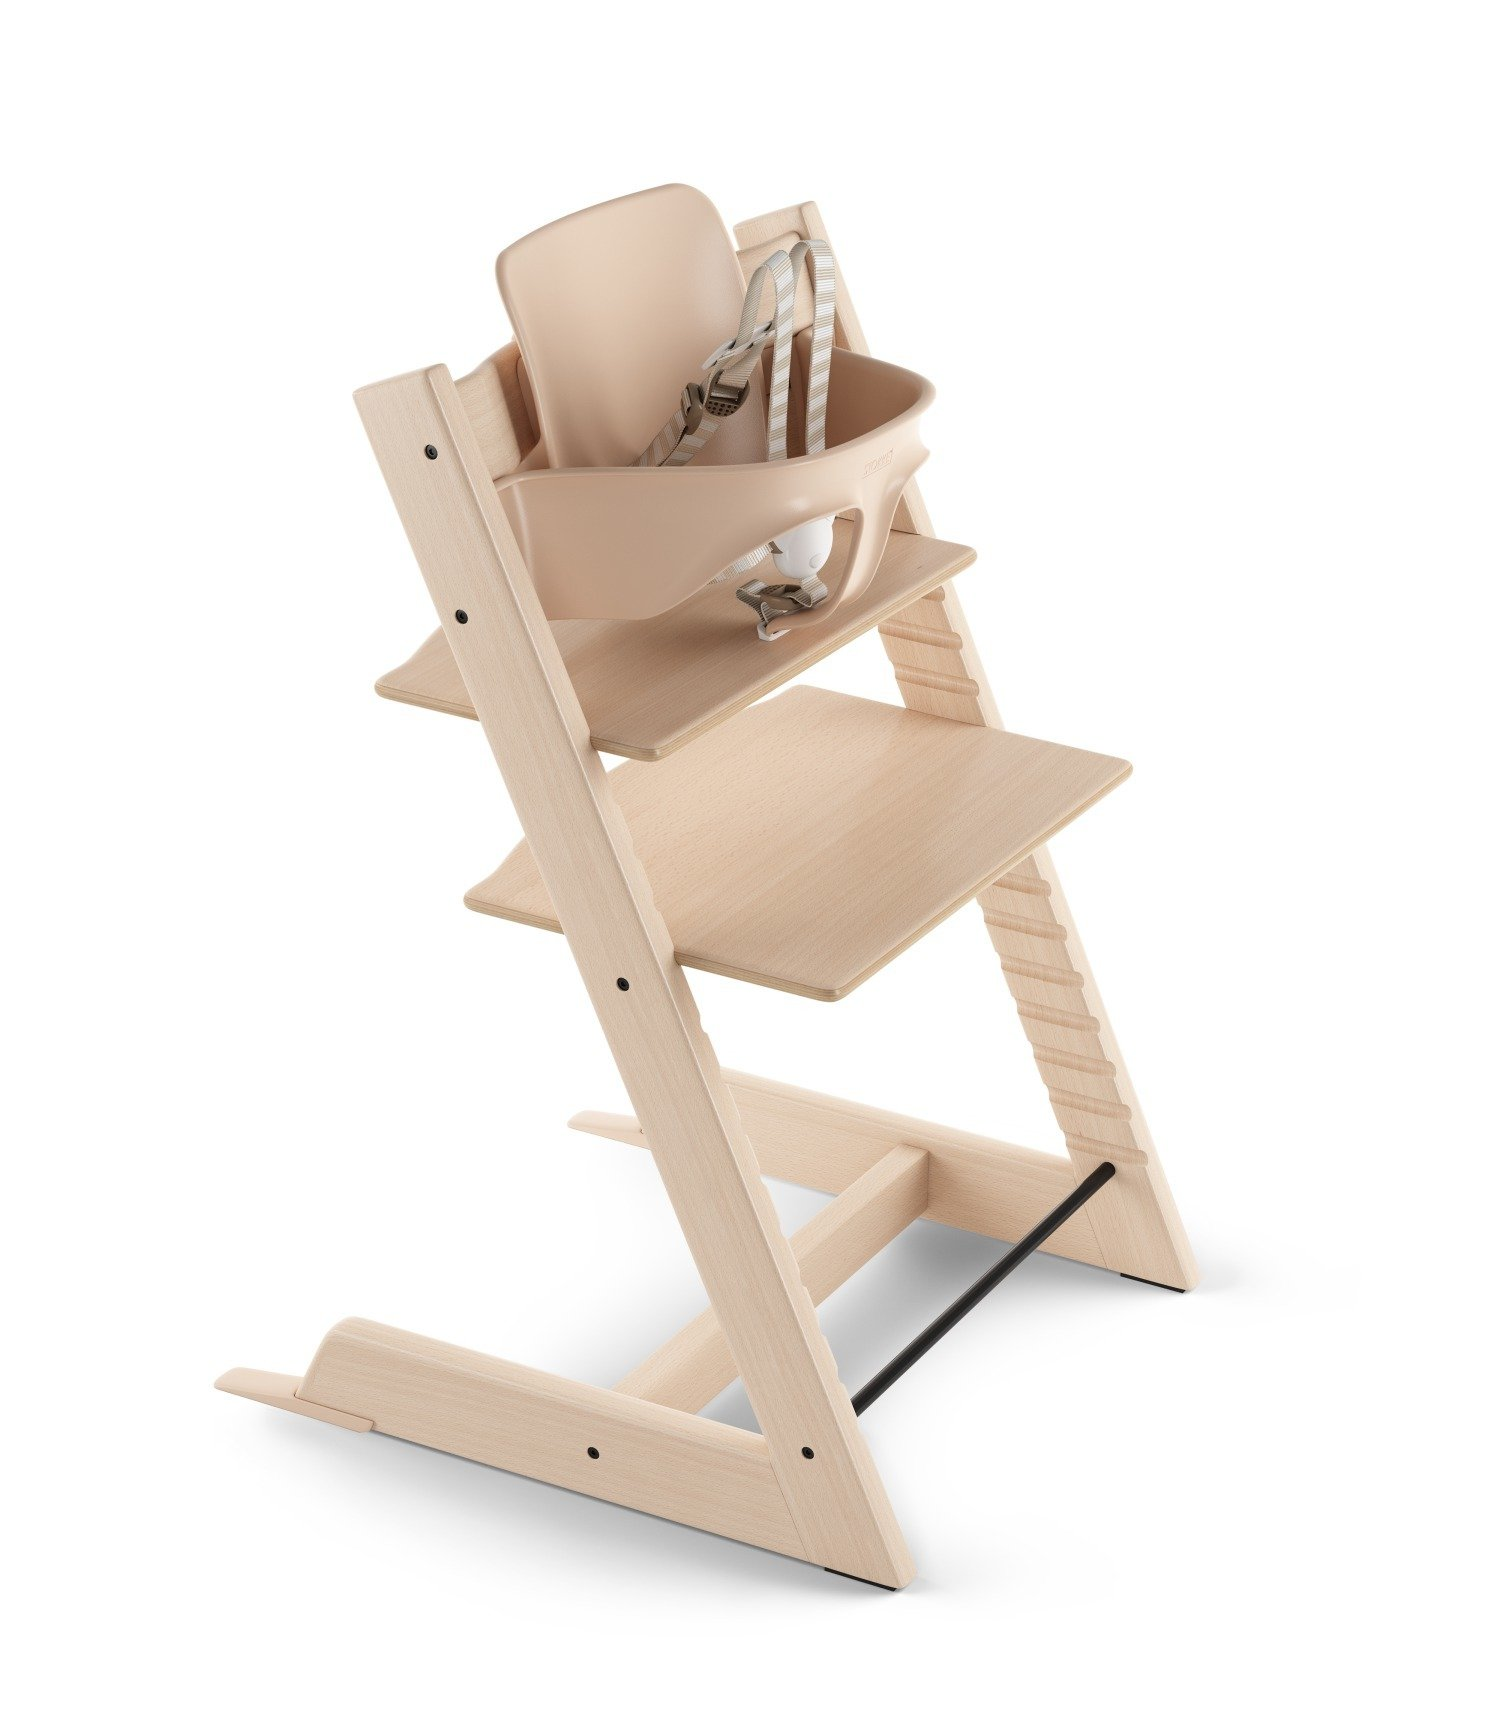 Stokke Tripp Trapp High Chair Package - Natural